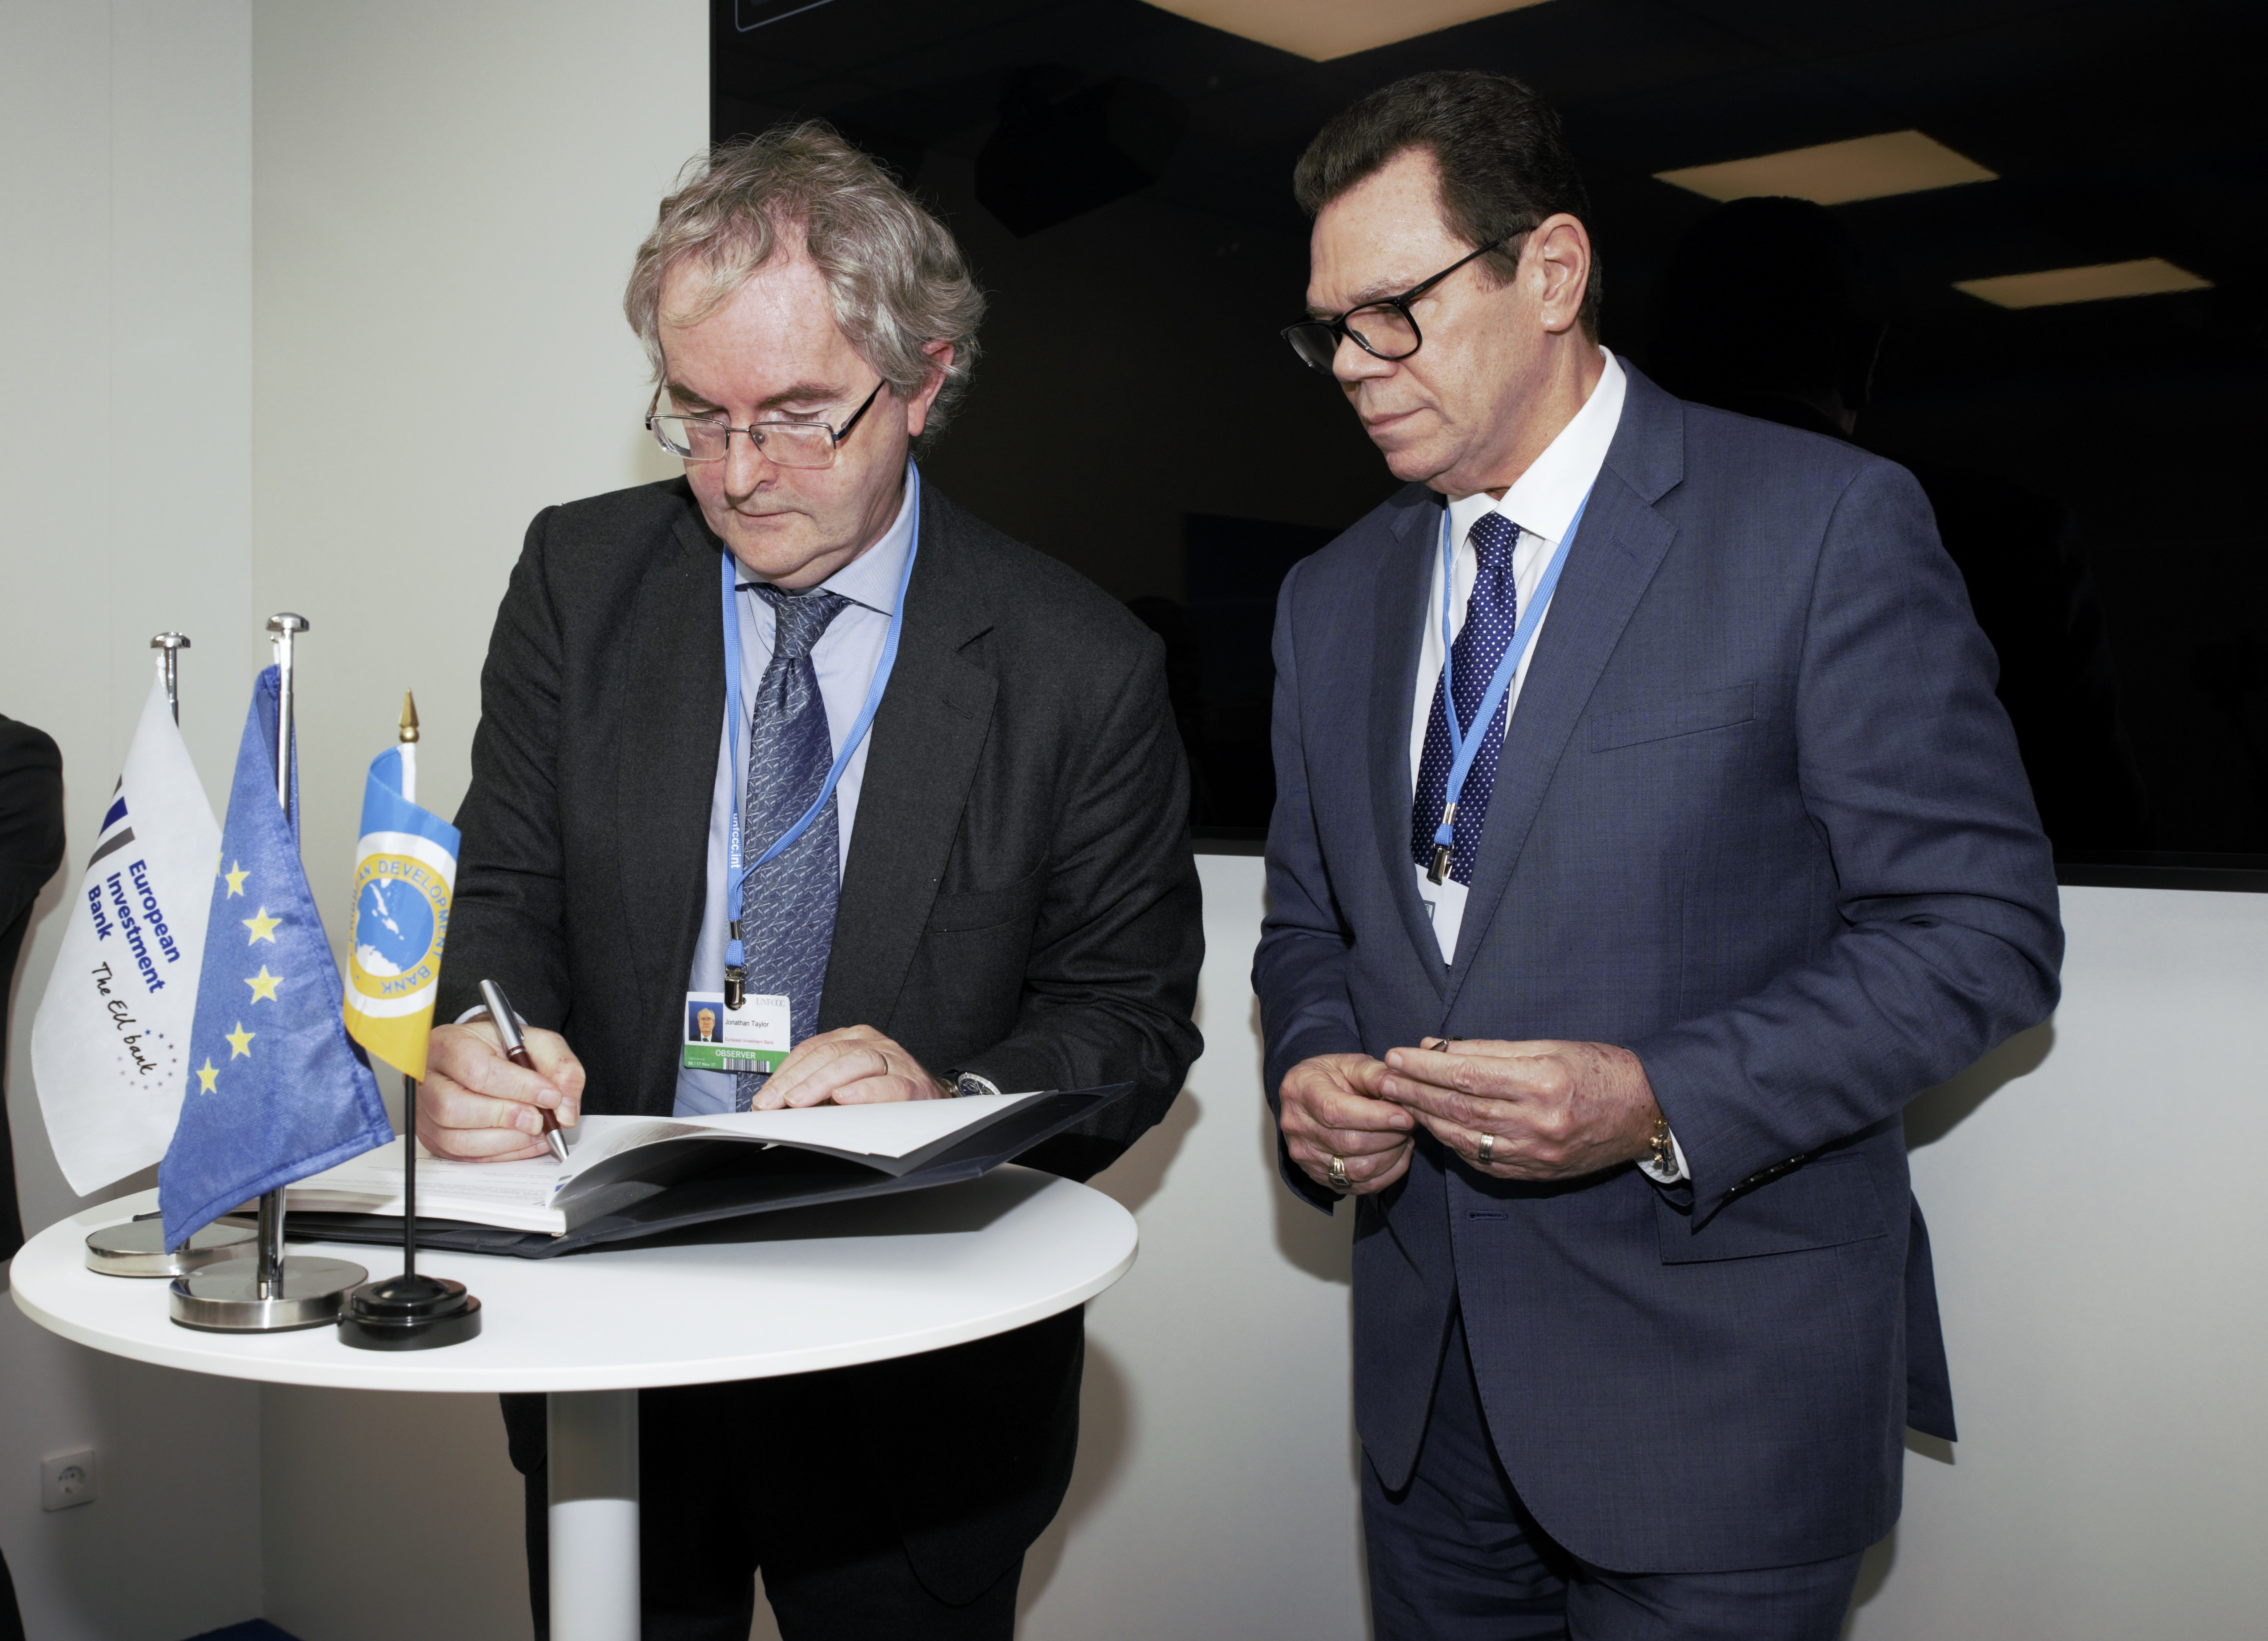 EIB Vice President responsible for Climate Action, Jonathan Taylor (left) and CDB President, Dr. Wm. Warren Smith (right) sign the agreement in Bonn on November 13, 2017